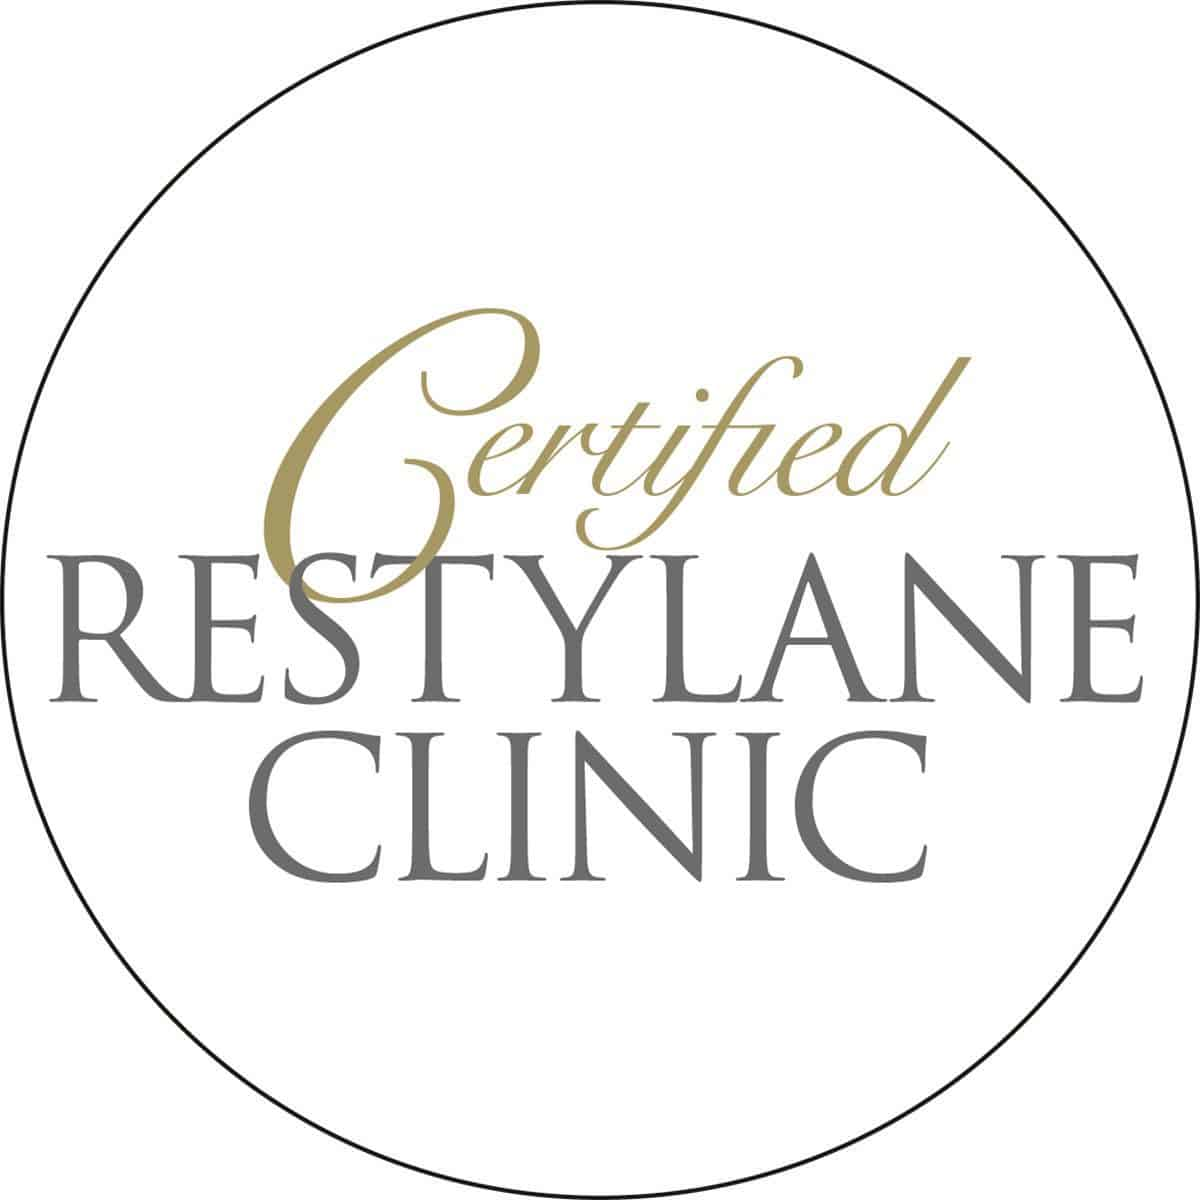 Certified-Clinic-1200